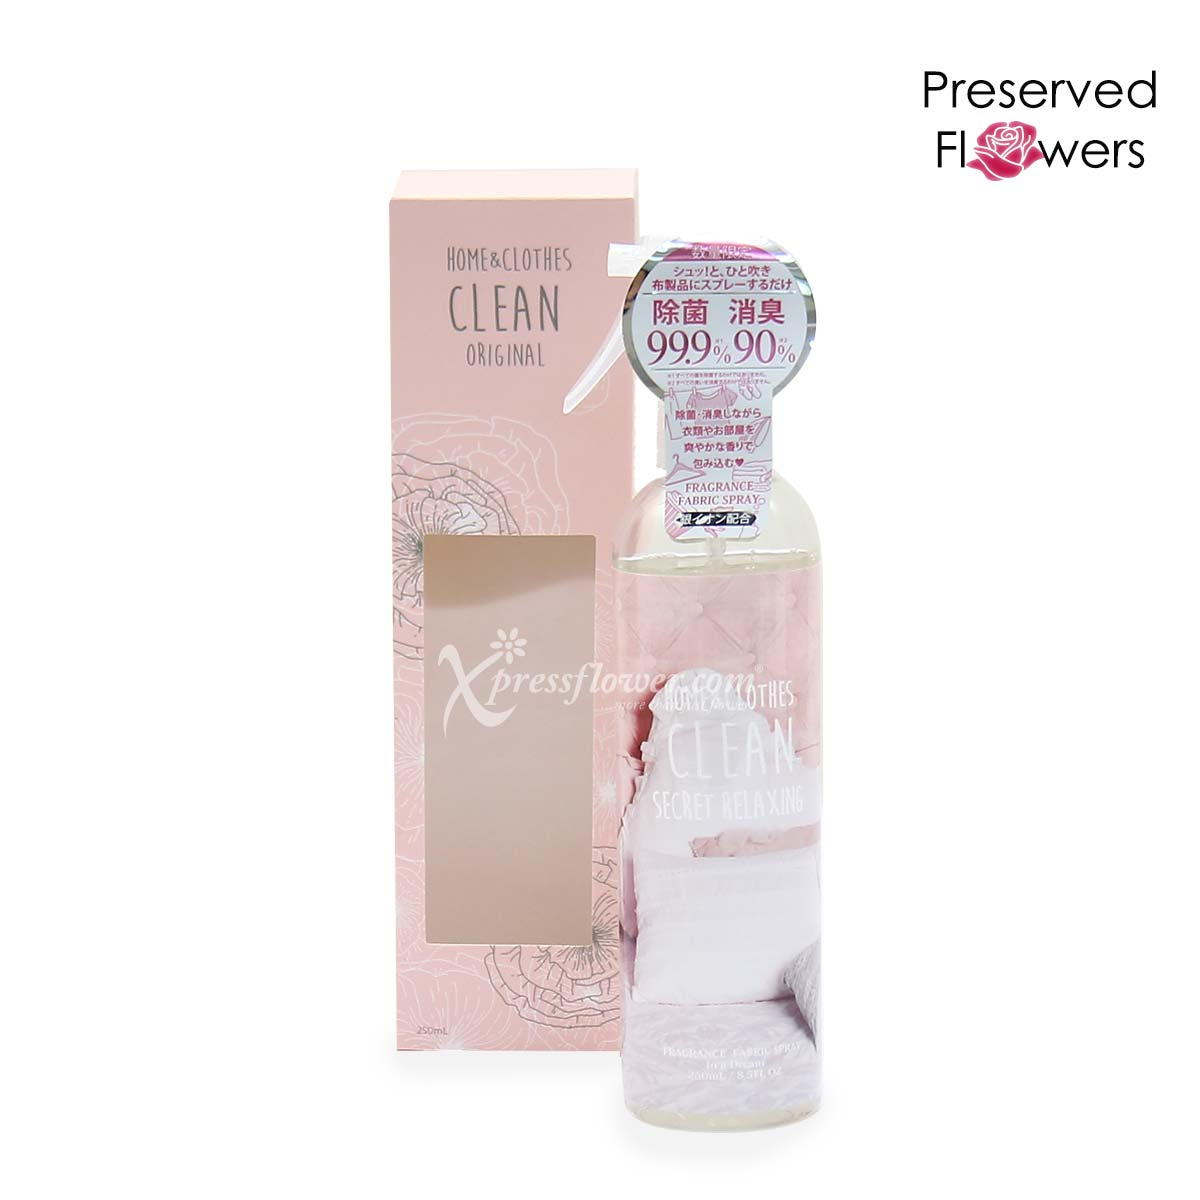 PR2101 Love Potion Preserved flower with gift